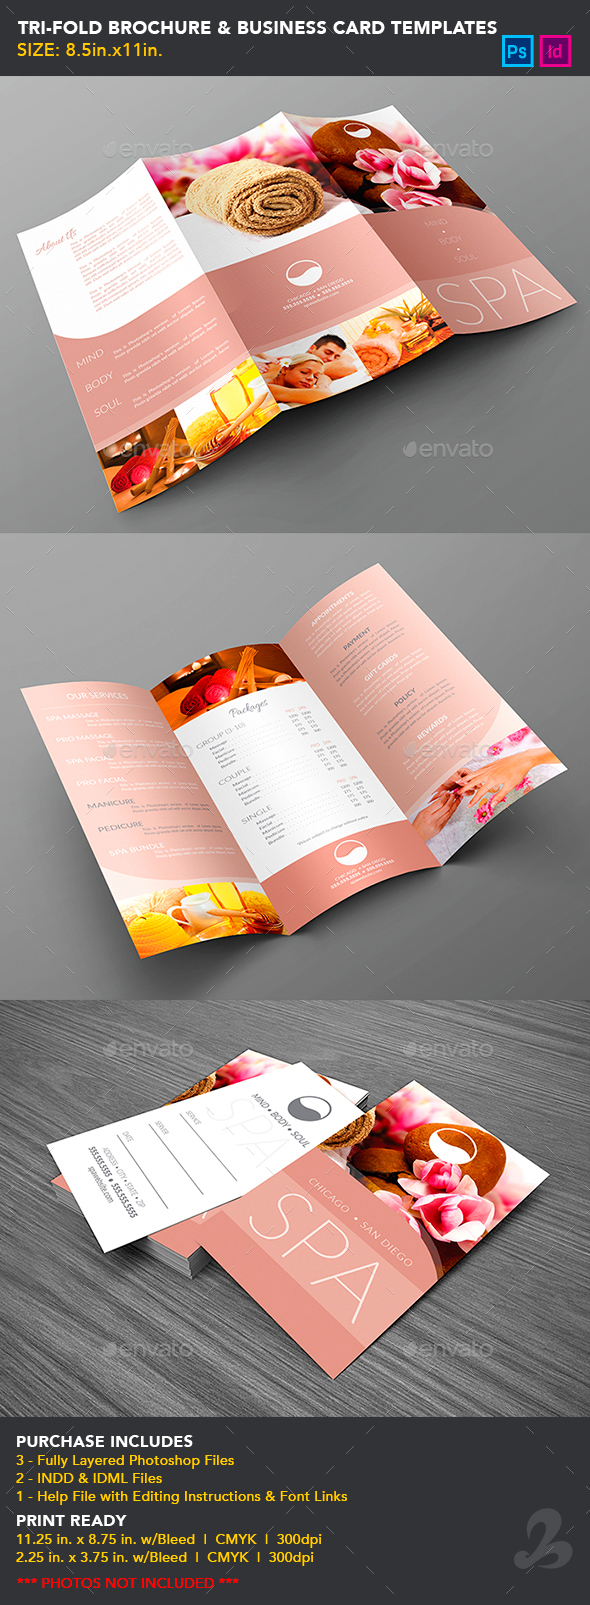 Tri fold brochure business card templates spa by creativb tri fold brochure business card templates spa brochures print templates colourmoves